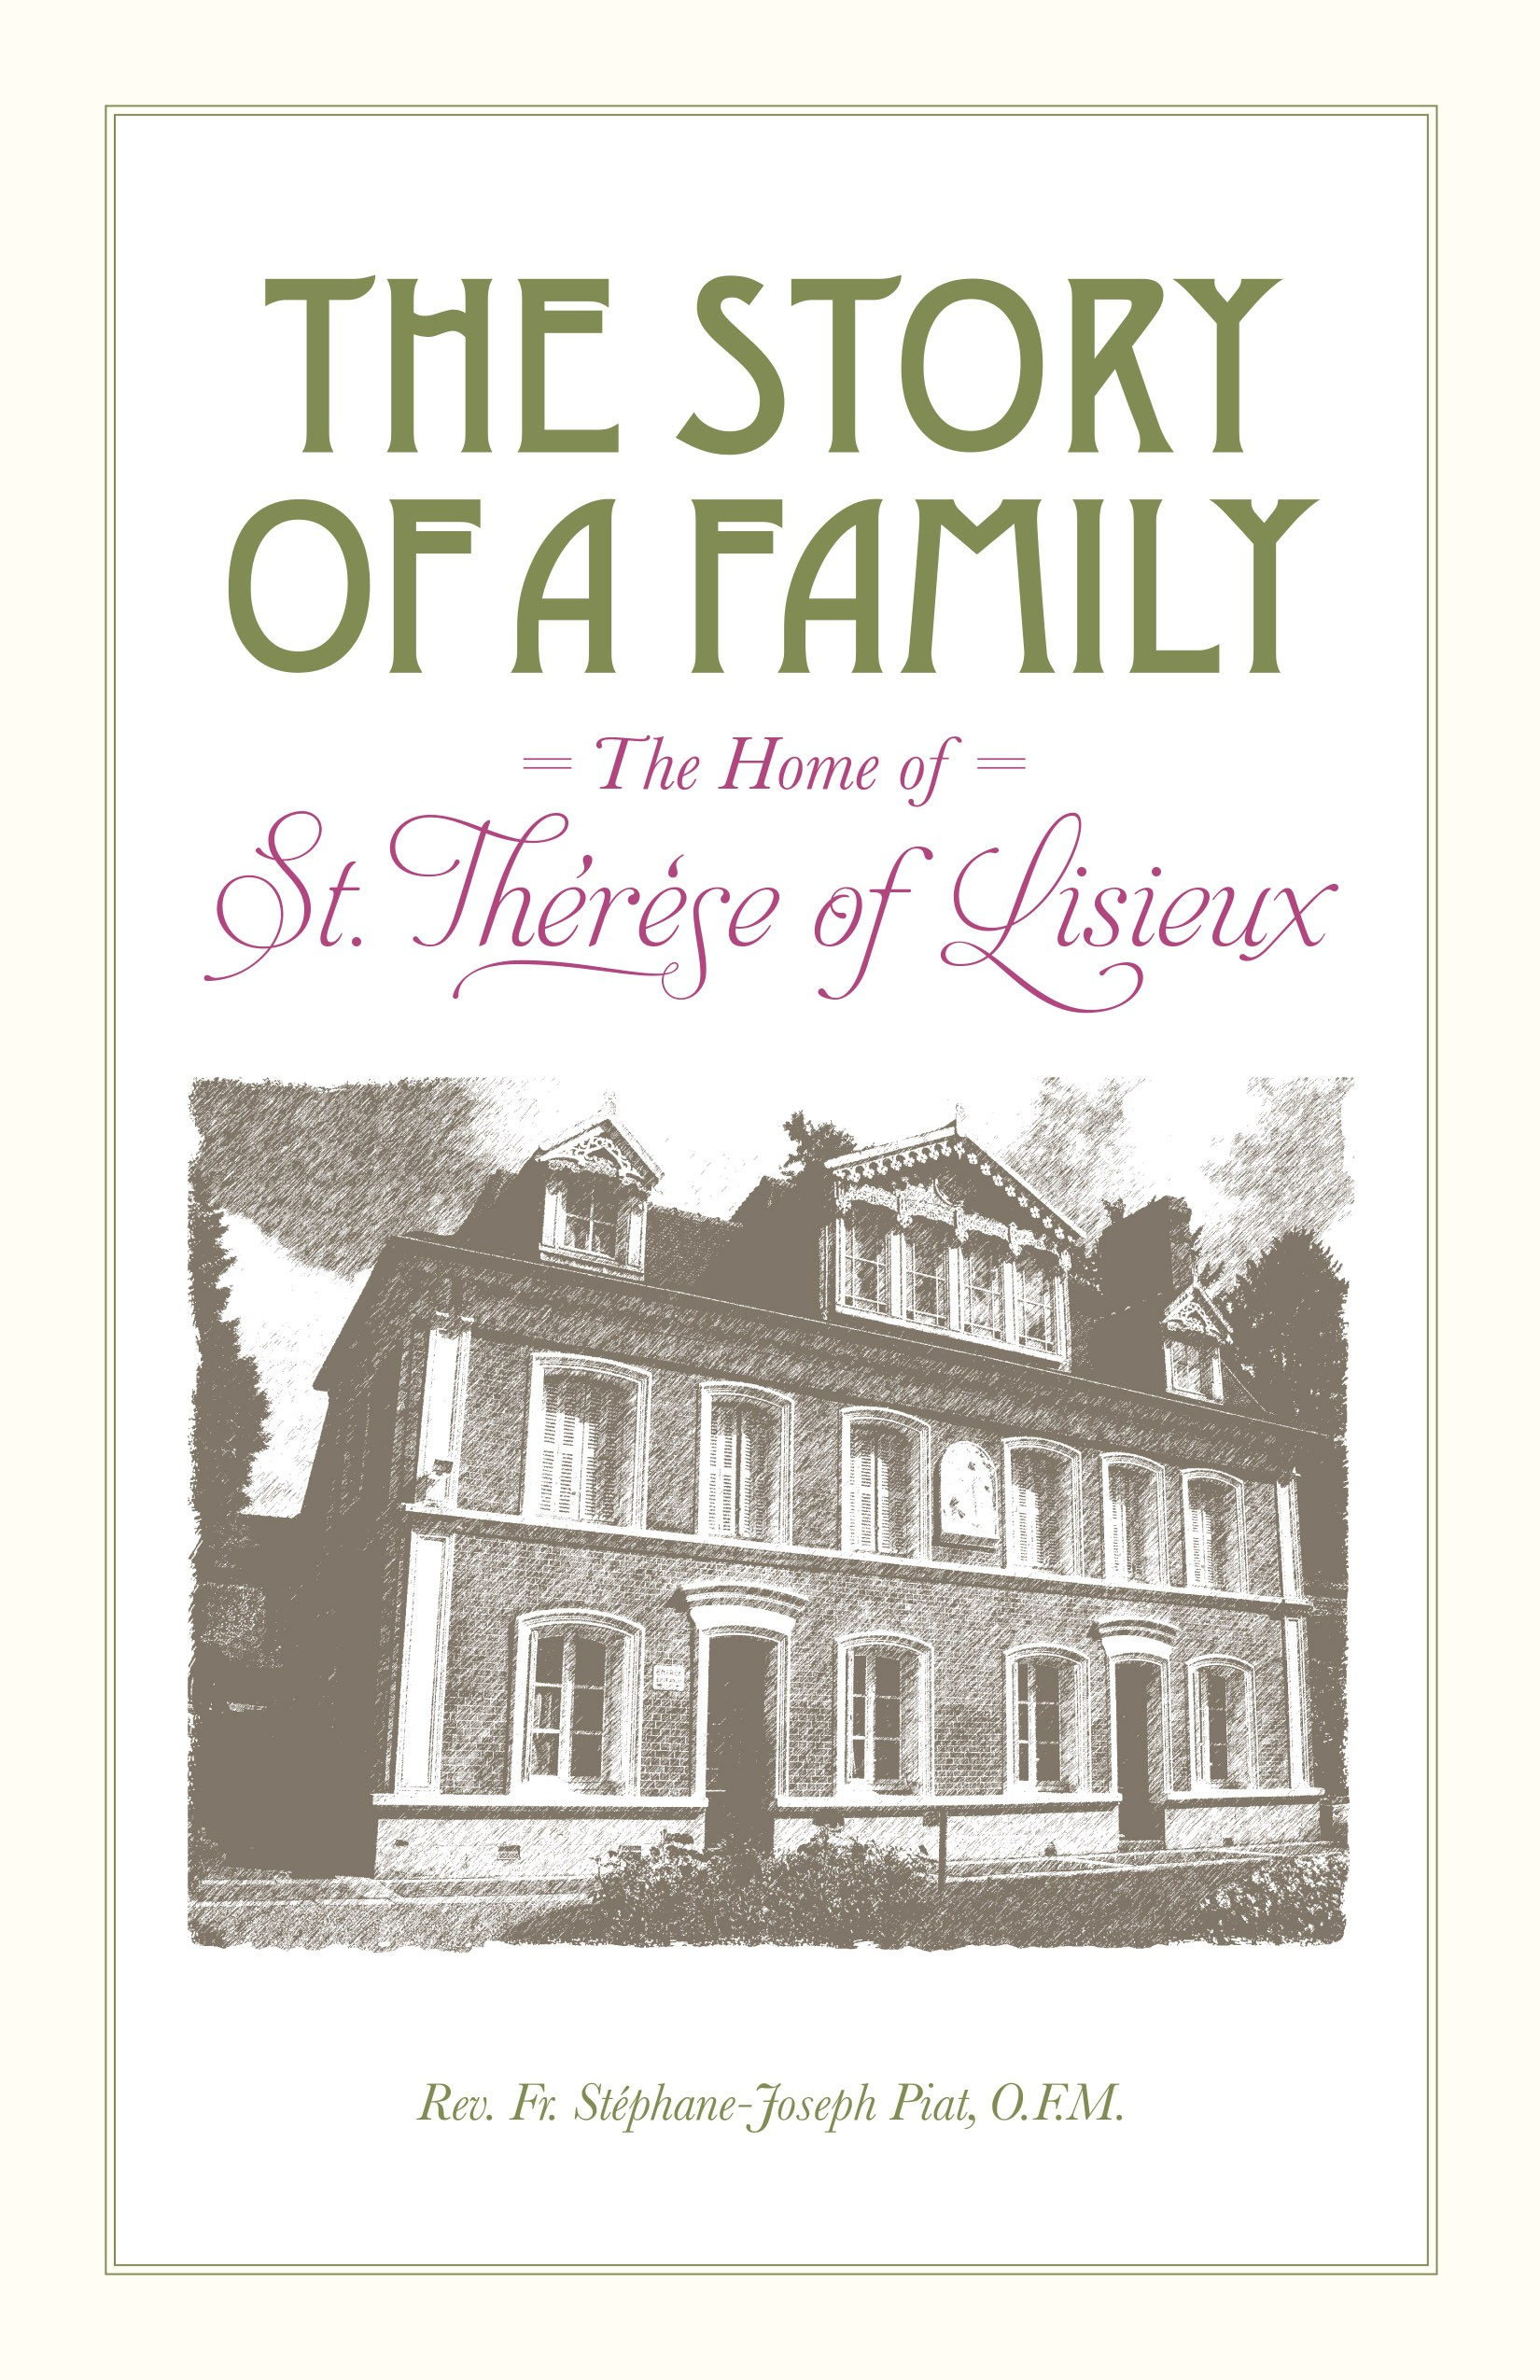 The Story of a Family: The Home of St. Thérèse of Lisieux